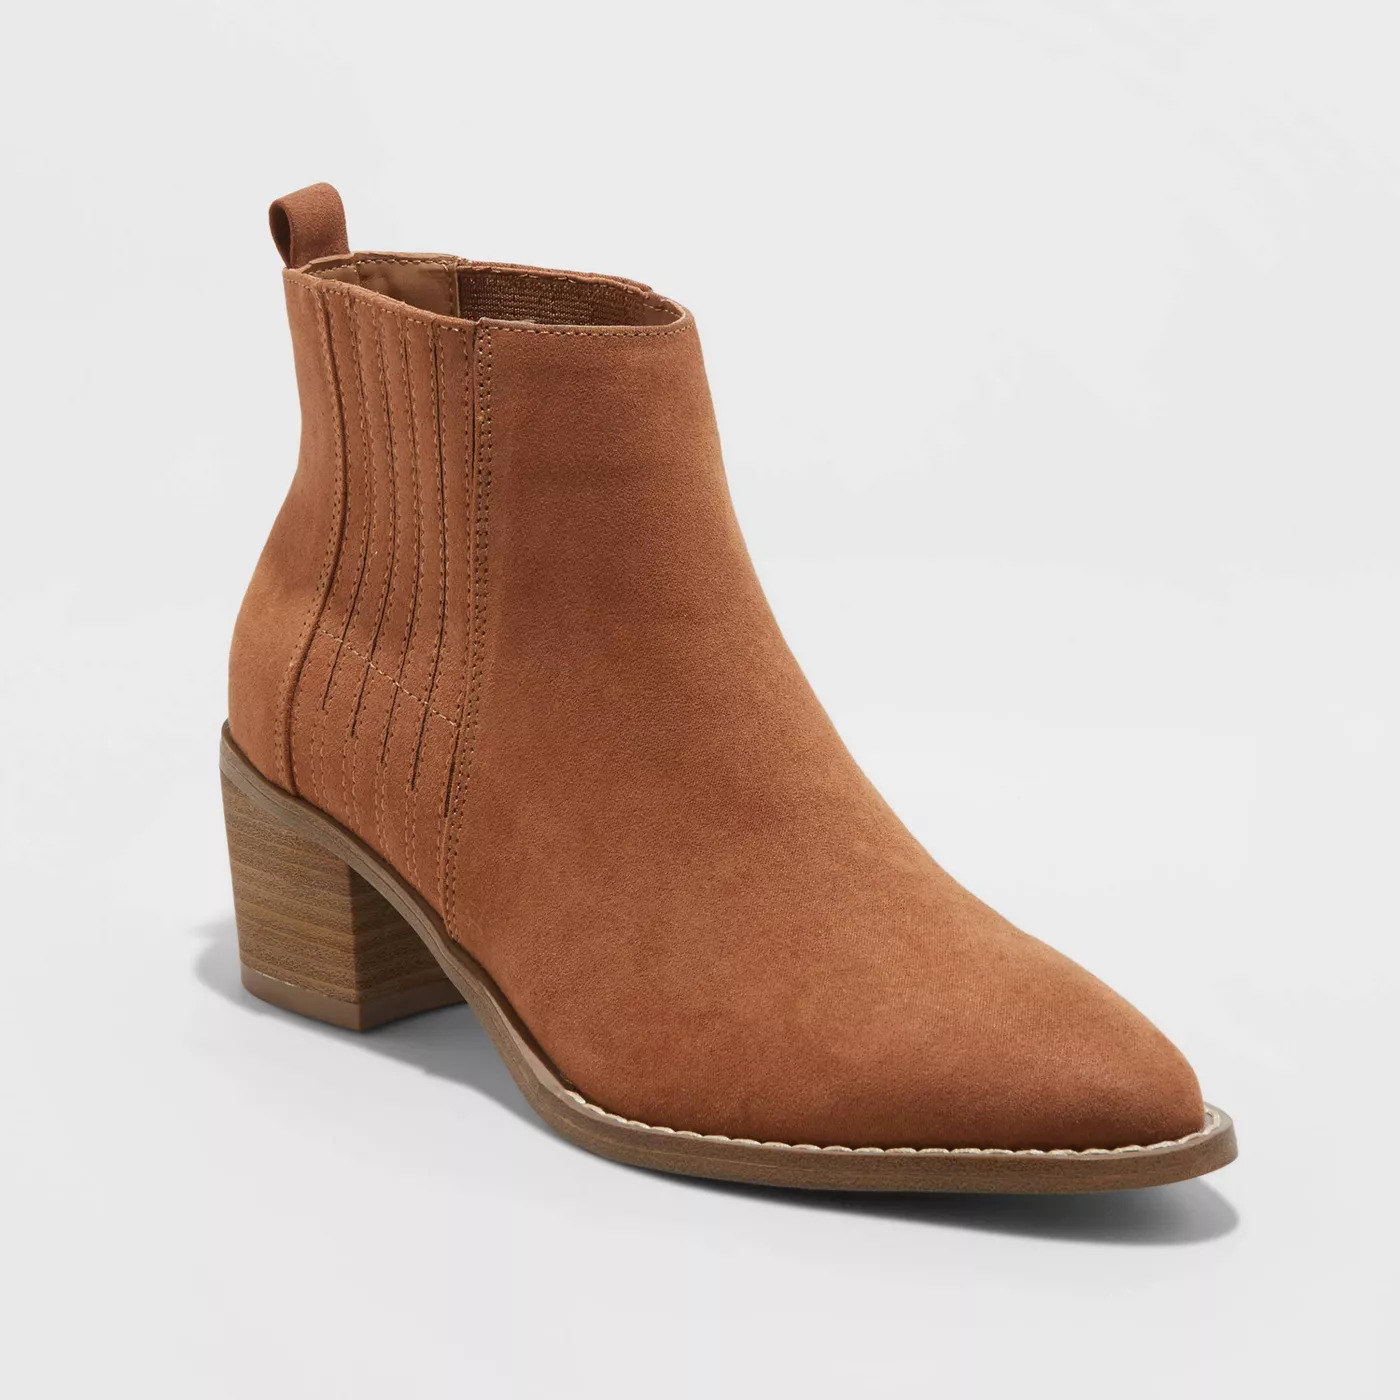 cognac faux suede bootie with a tan sole and heel